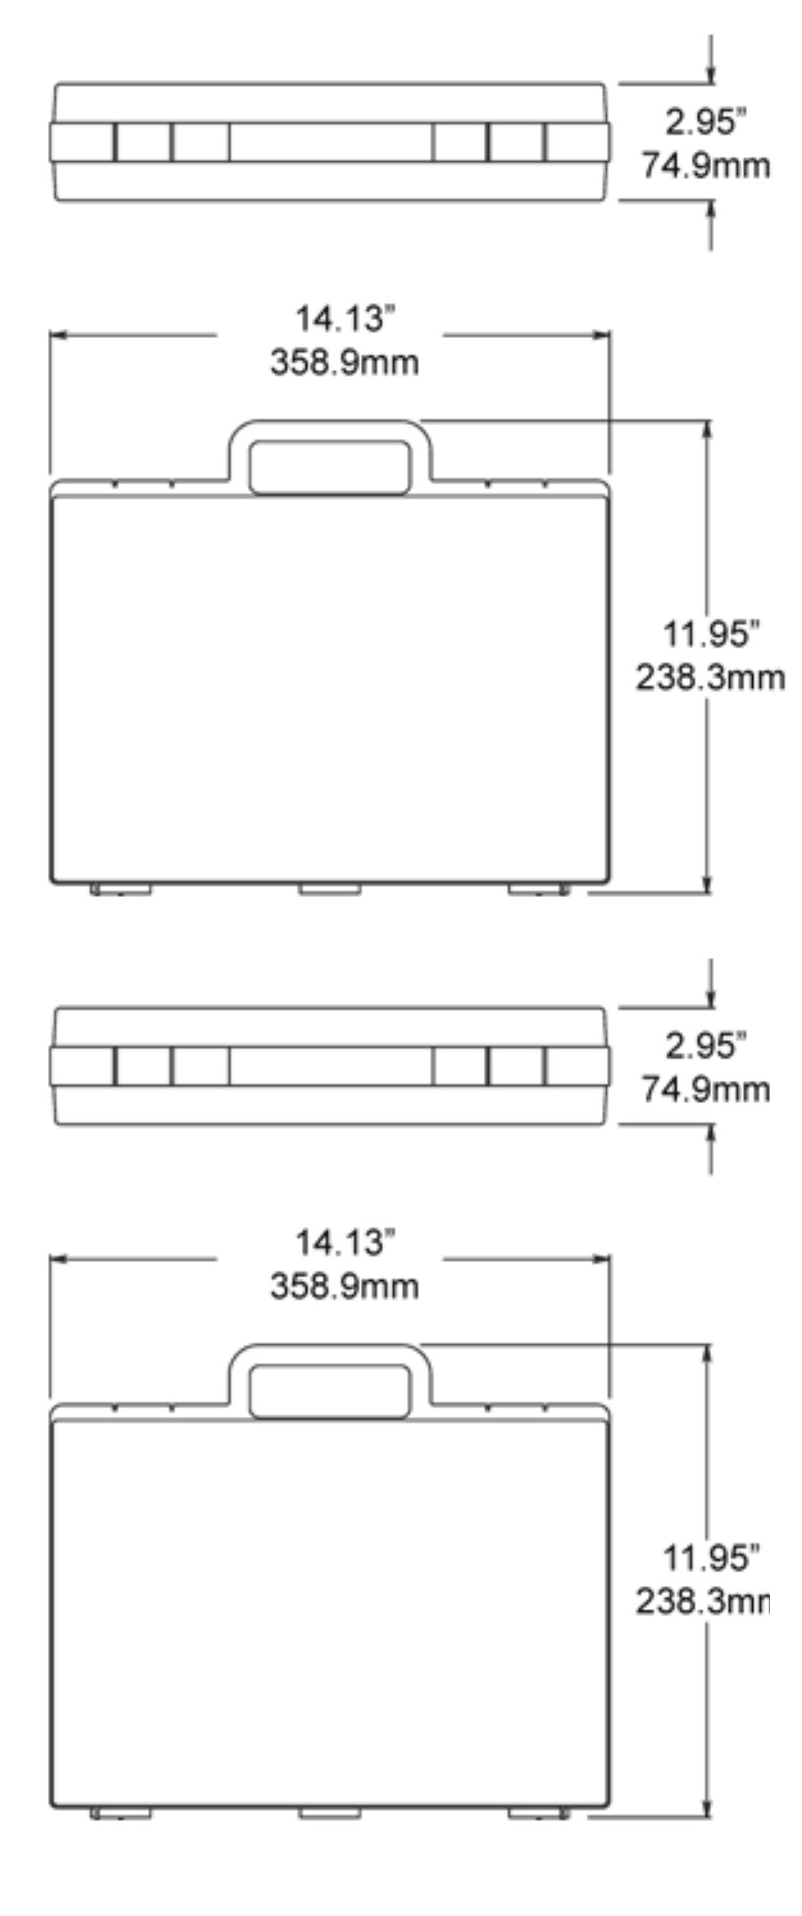 Dimensions of the 610 Clikcase Hard Case